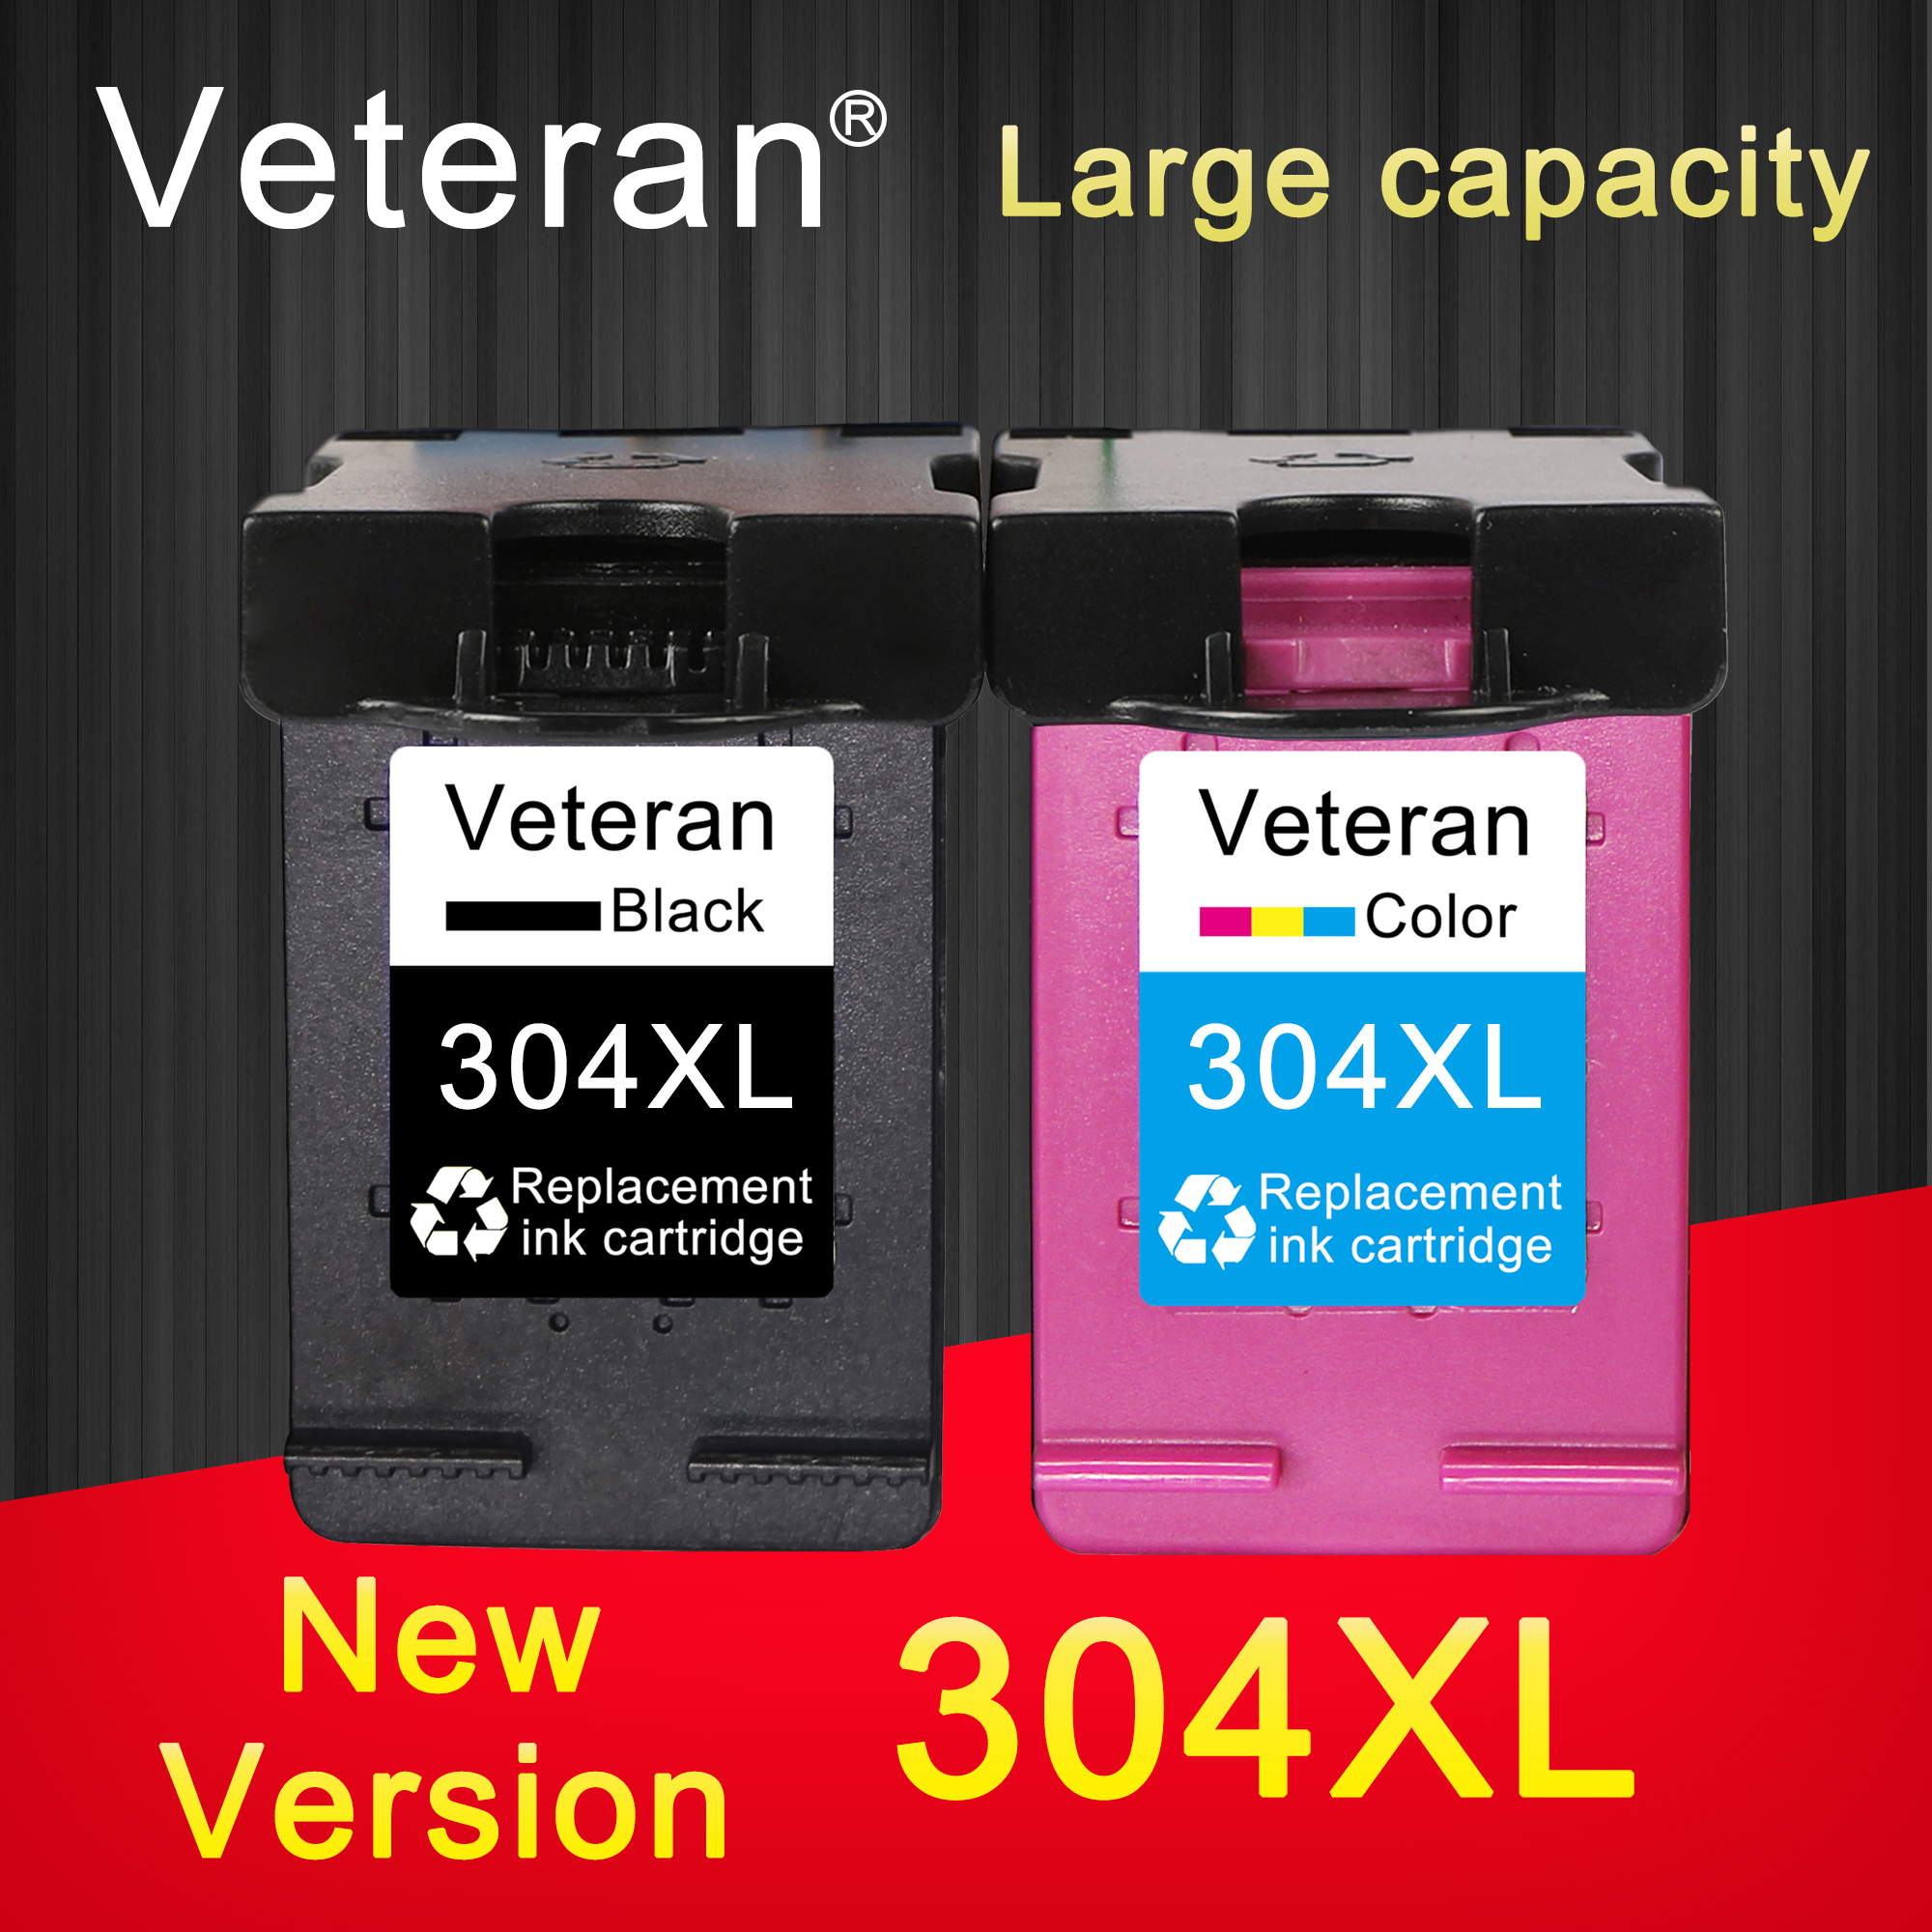 Veteran Ink Cartridge 304XL New Version For Hp304 Hp 304 Xl Deskjet Envy 2620 2630 2632 5030 5020 5032 3720 3730 5010 Printer(China)